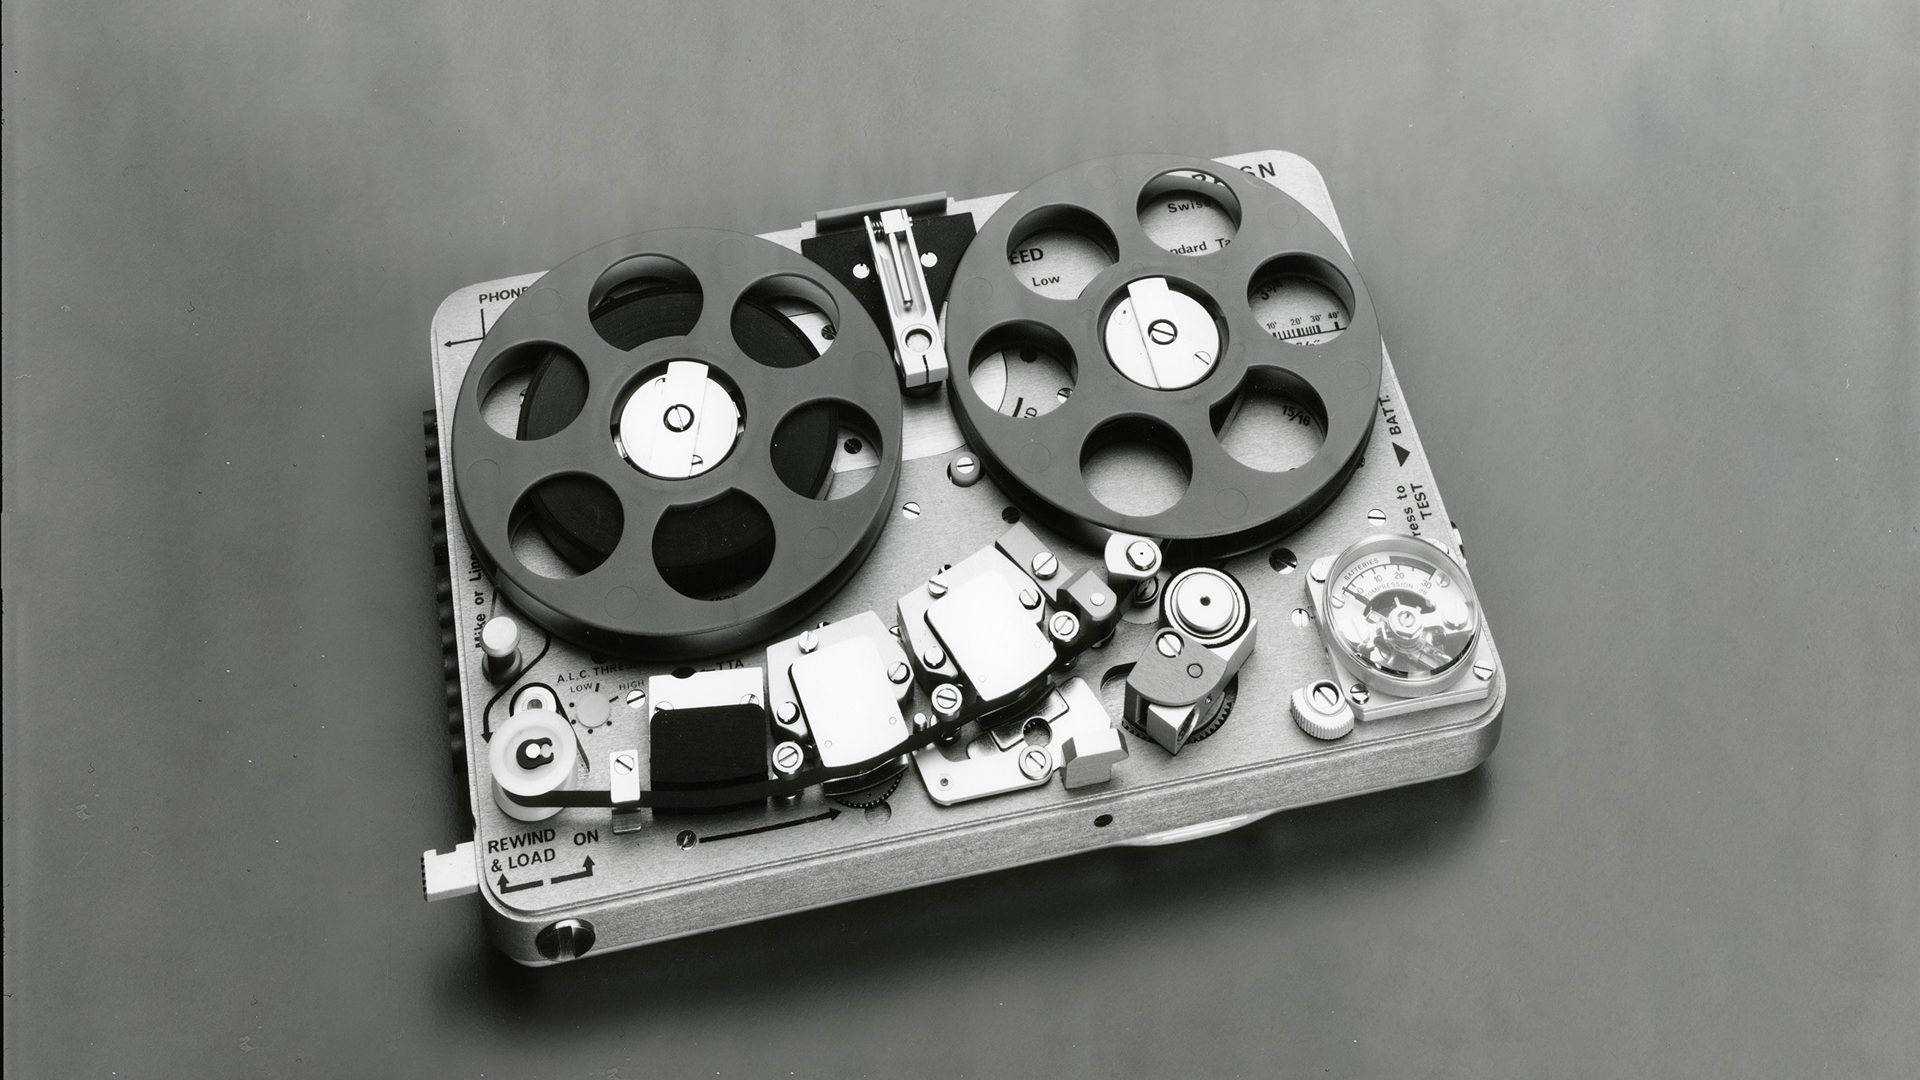 Nagra SN black & white spy recorder james bond mission impossible